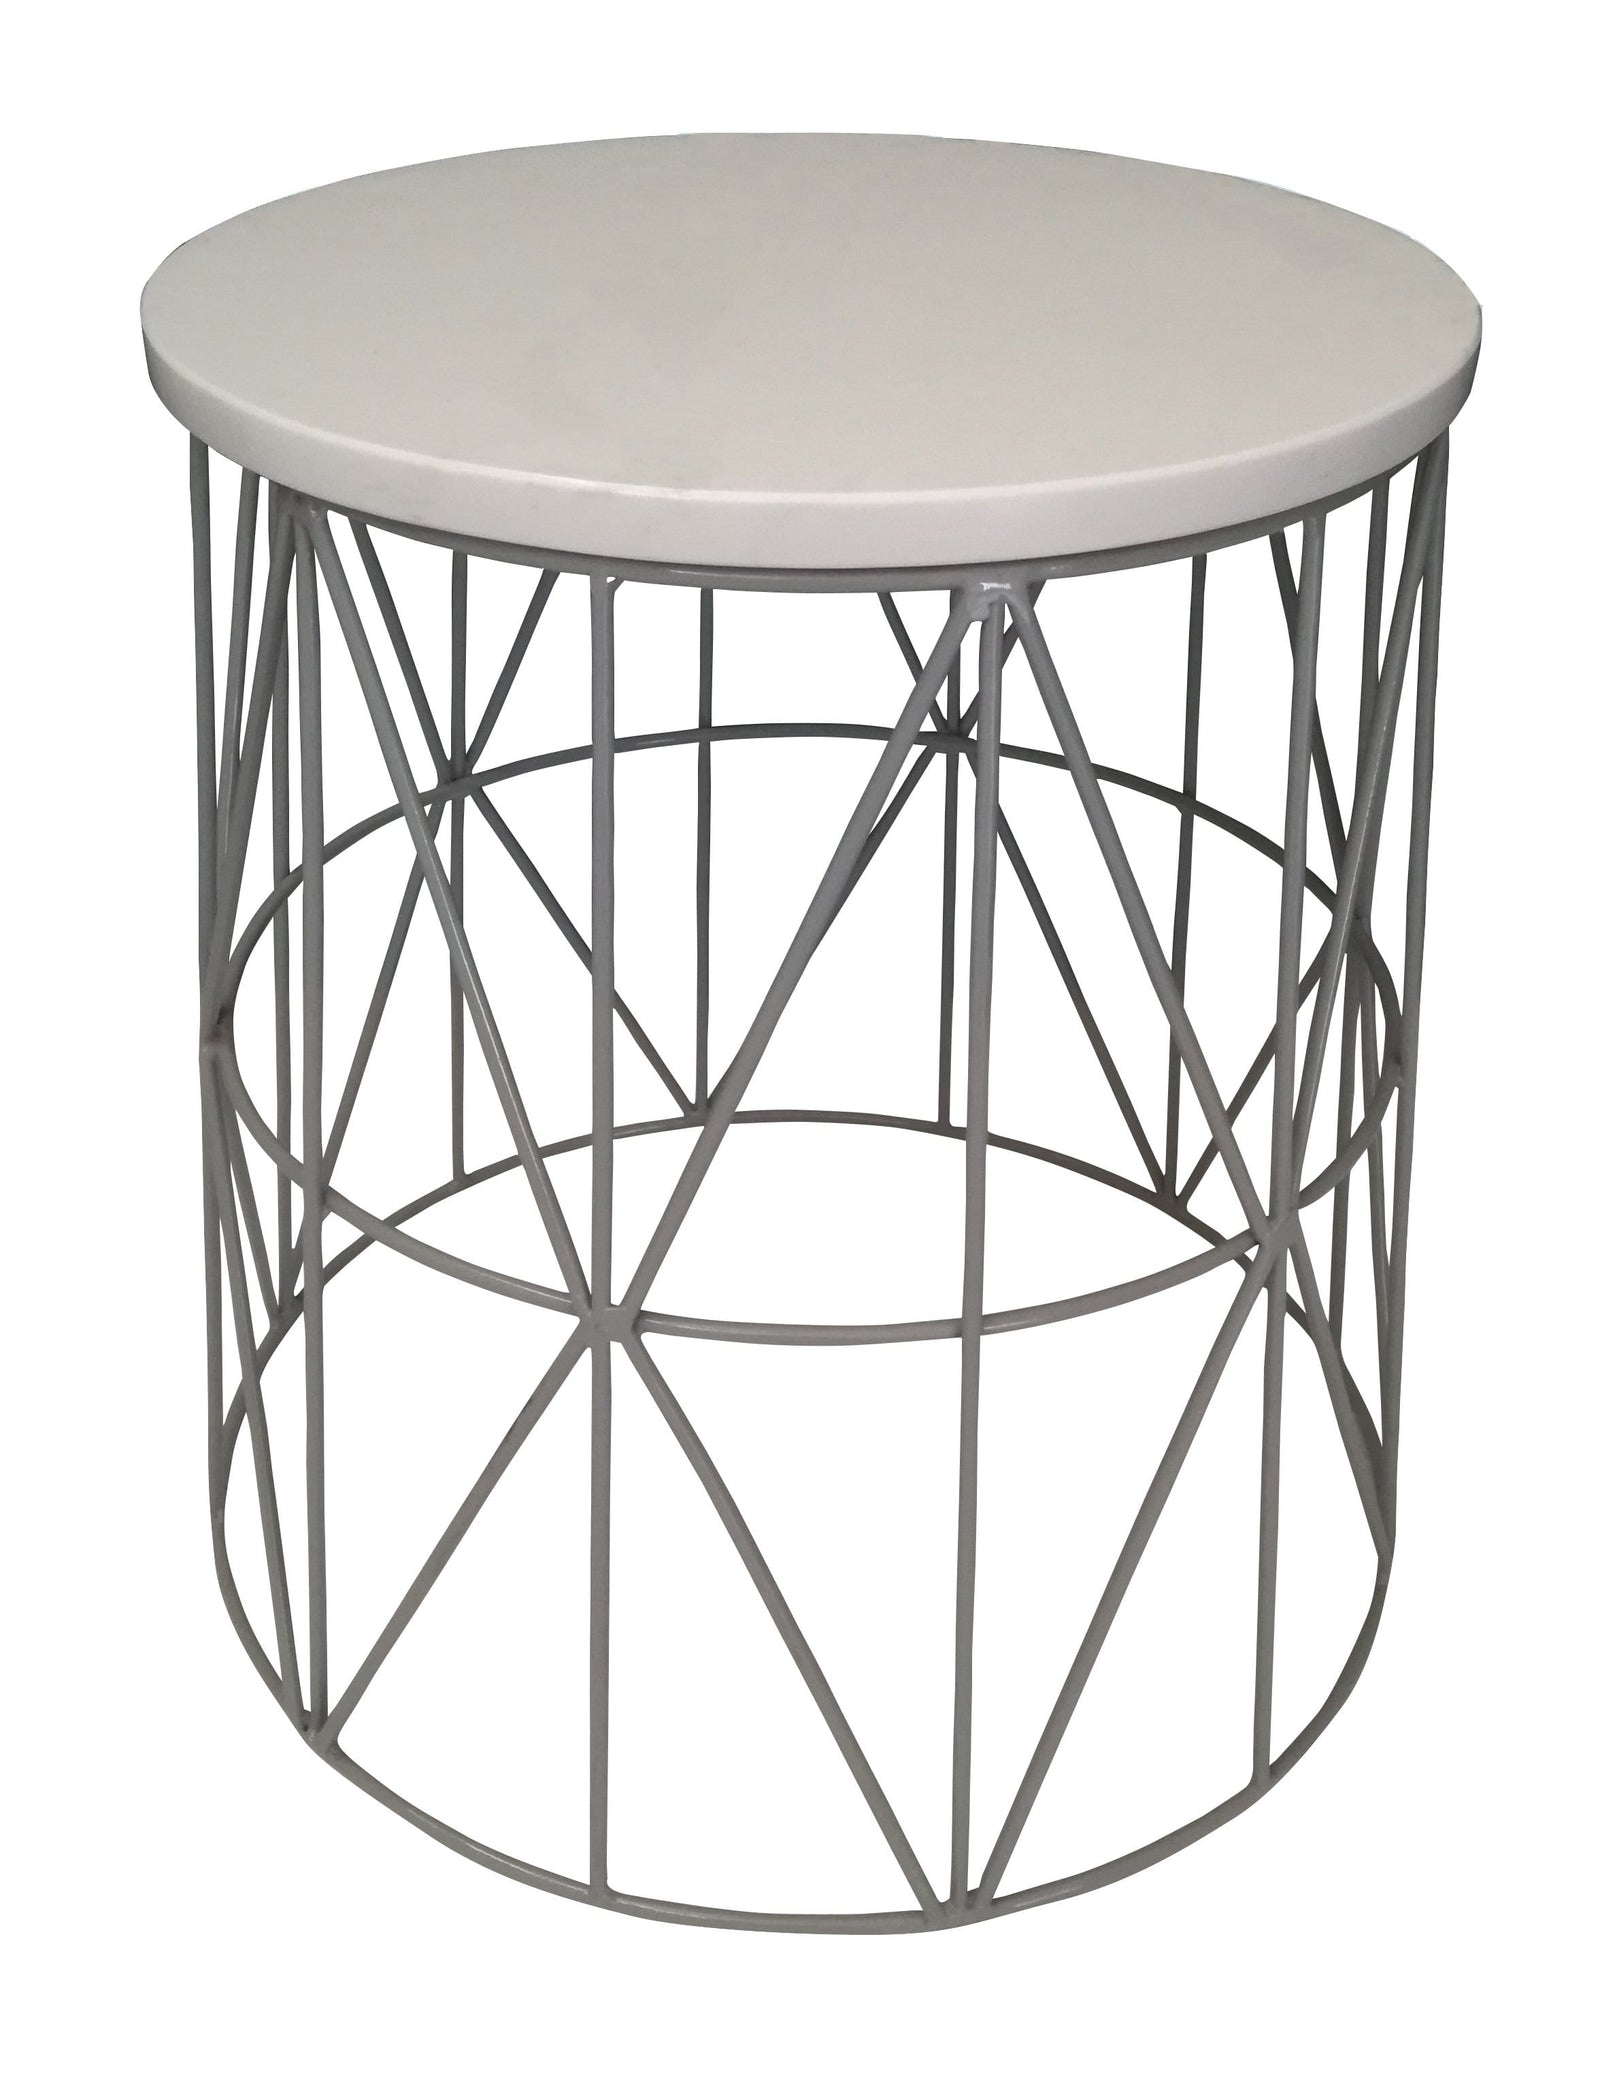 Pythag Side Table, Grey Epoxy with White Sprayed Wood Top